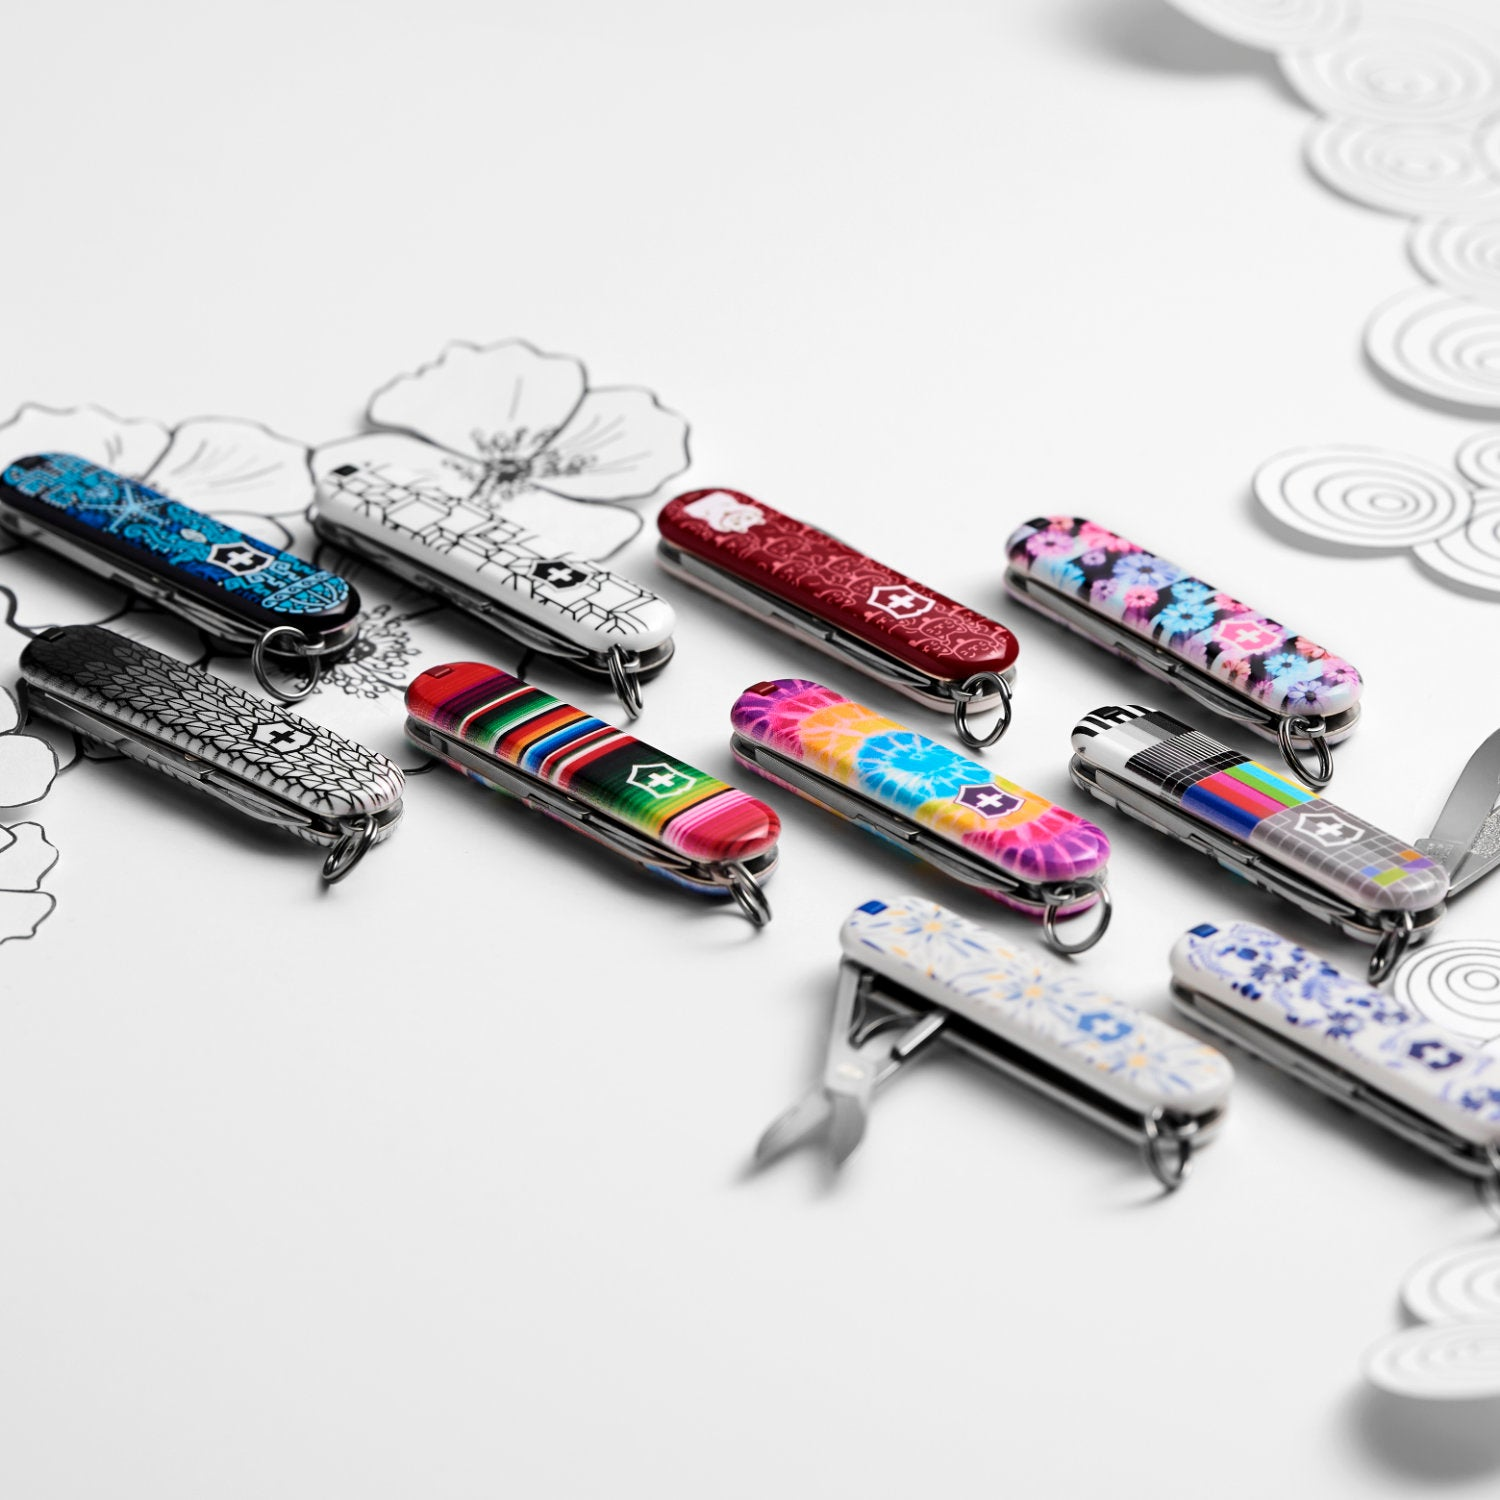 New Victorinox Swiss Army Knives at Swiss Knife Shop